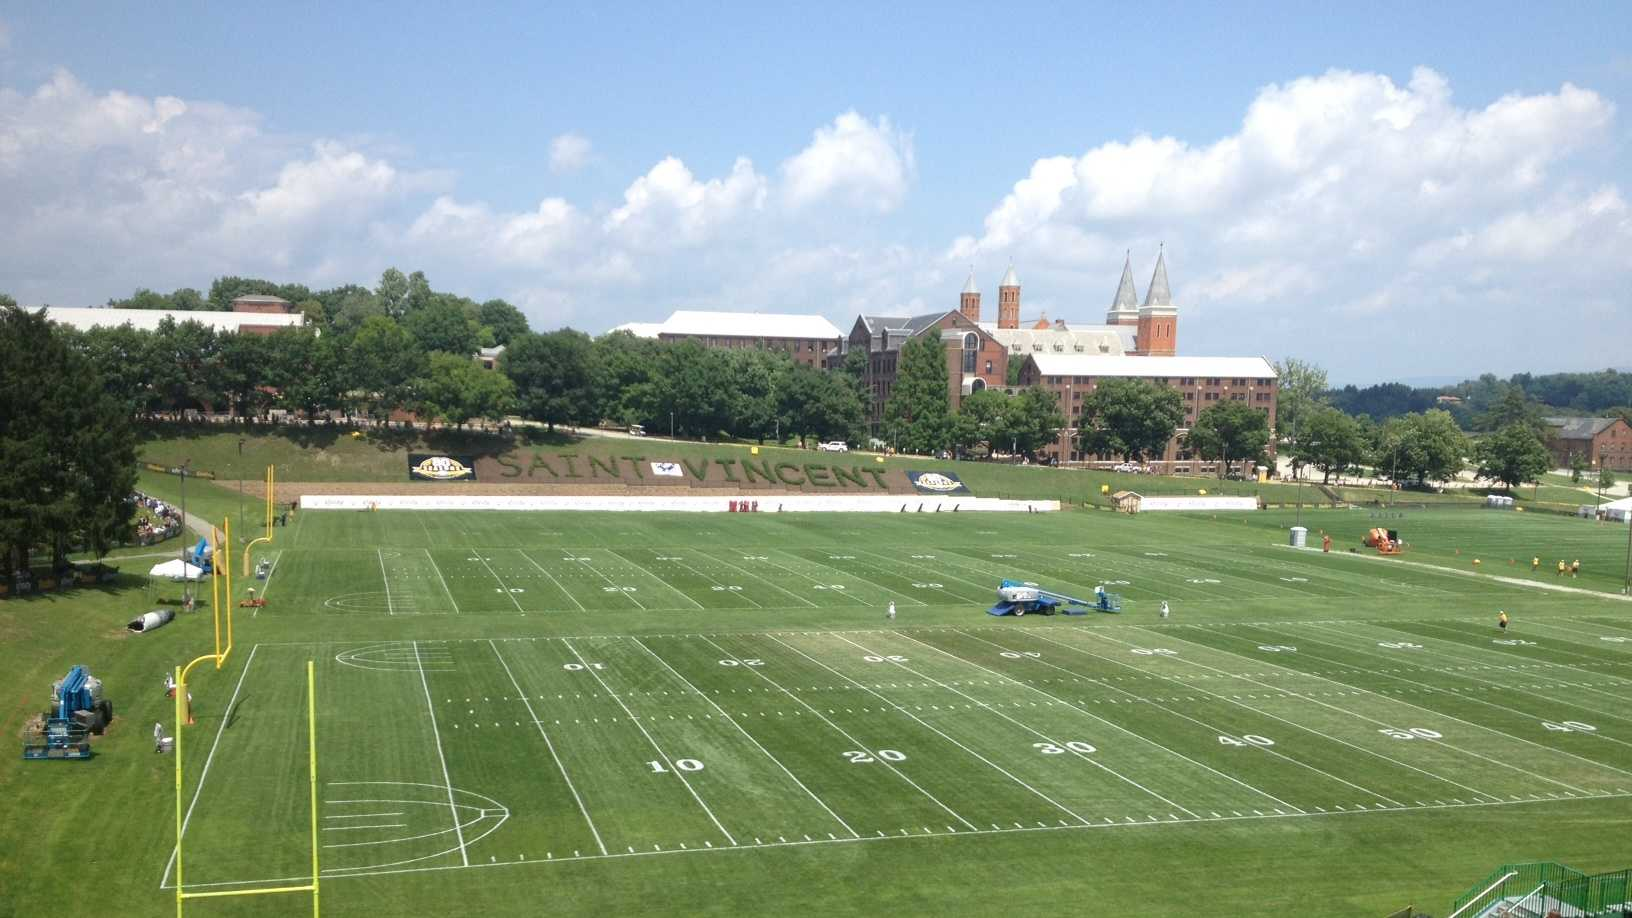 Chuck Noll Field at Saint Vincent College in Latrobe